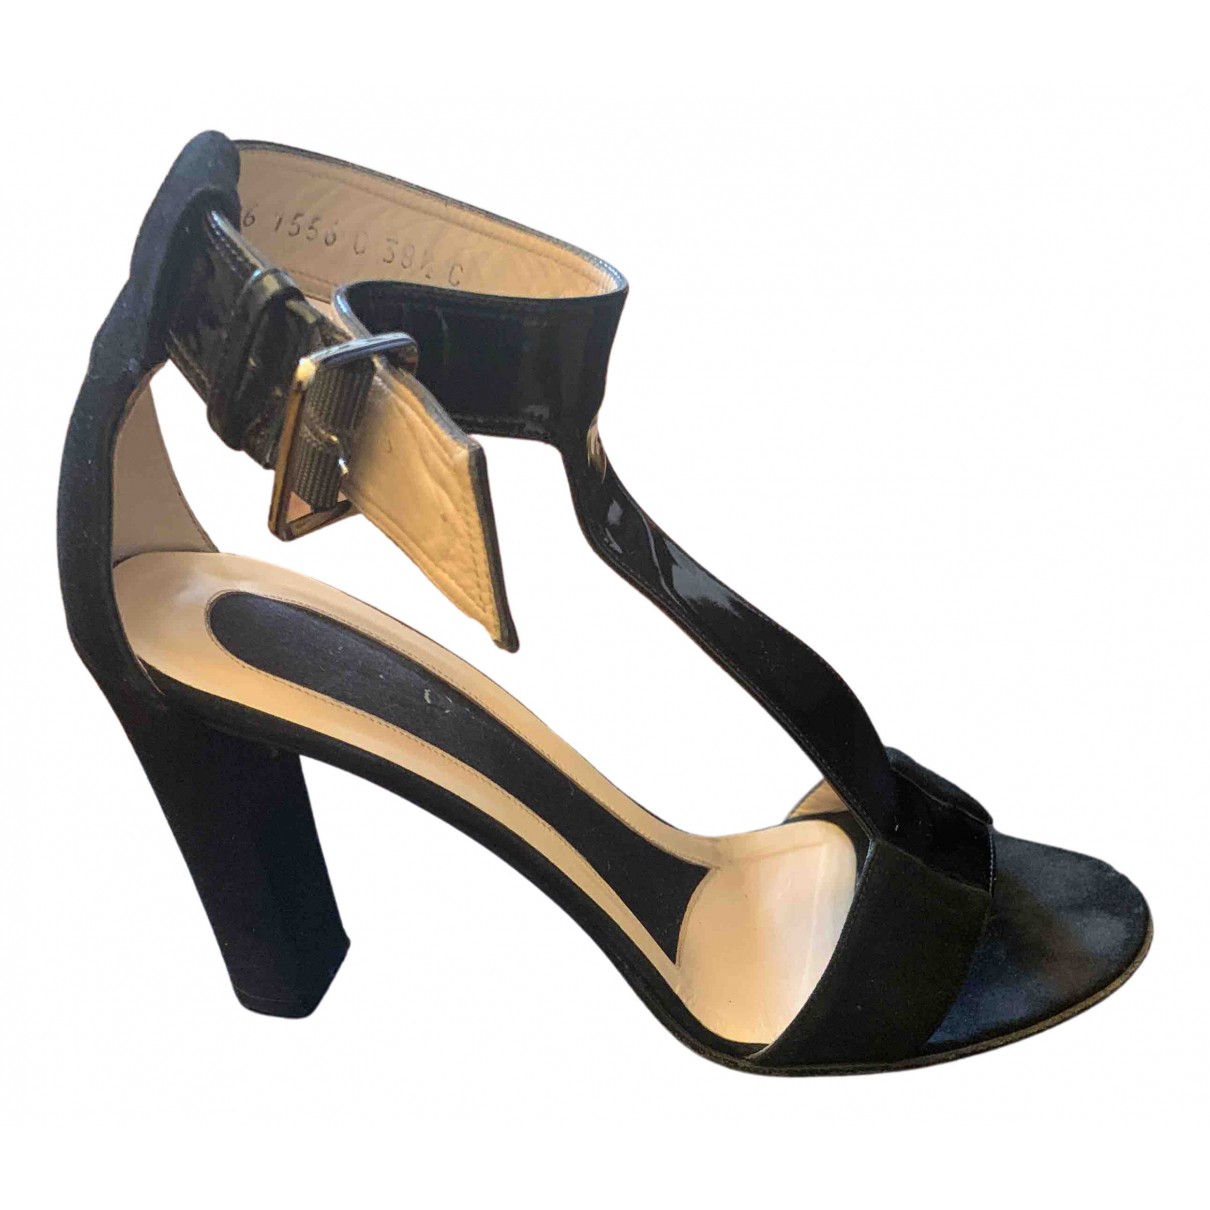 Gucci N Black Patent leather Sandals for Women 38.5 EU